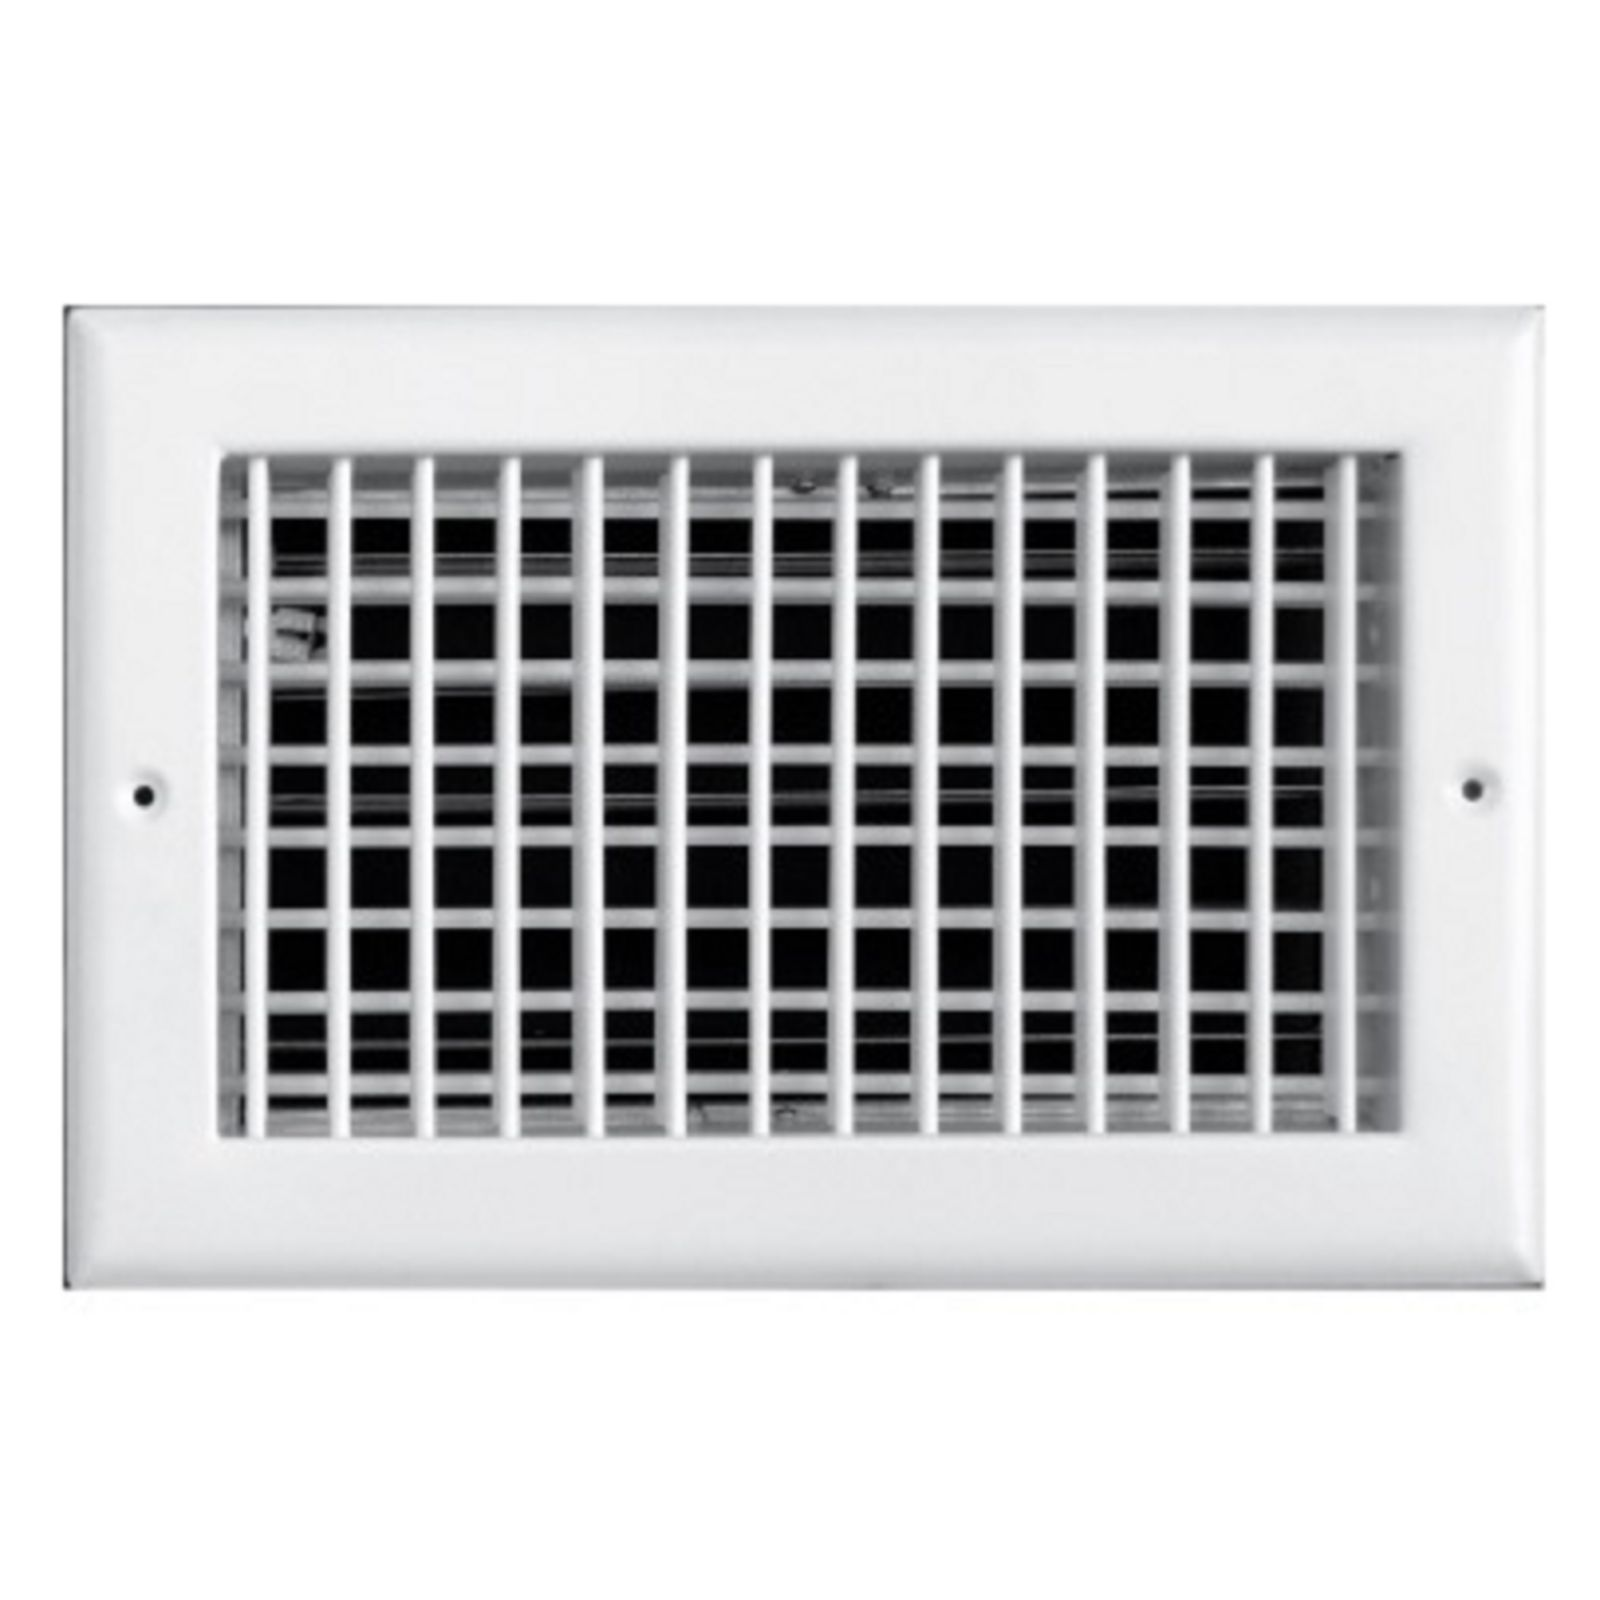 "TRUaire 220VO 08X04 - Steel Adjustable Double Deflection Wall/Ceiling Register With Opposed Blade Damper, White, 08"" X 04"""